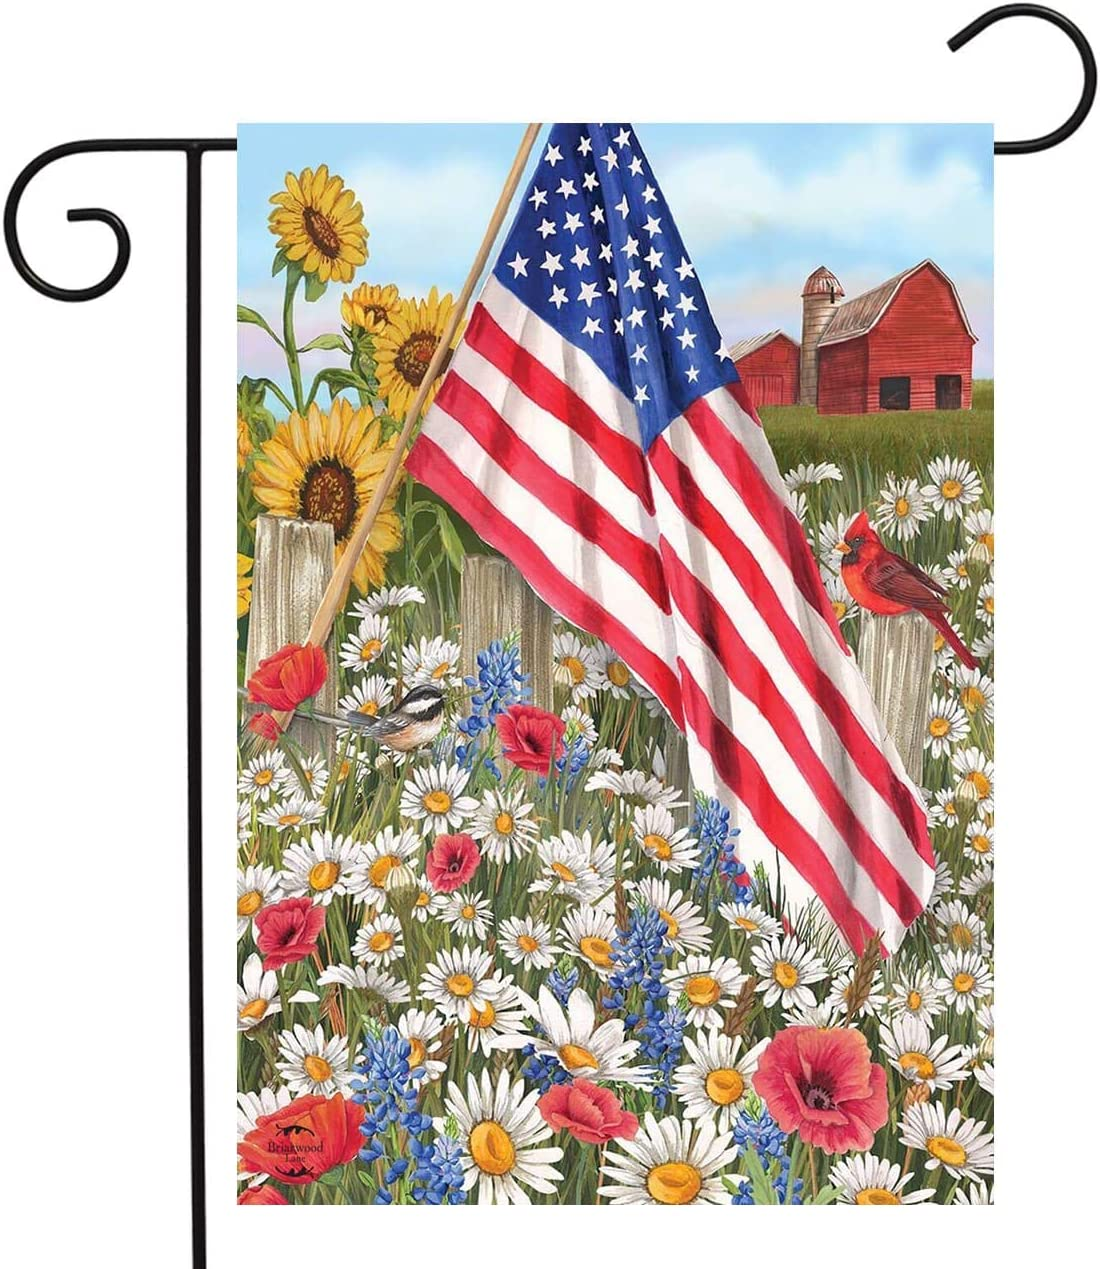 Details about  /Barbecue Decorative USA Vintage Applique Garden Flags Pack GP106076-BOAA